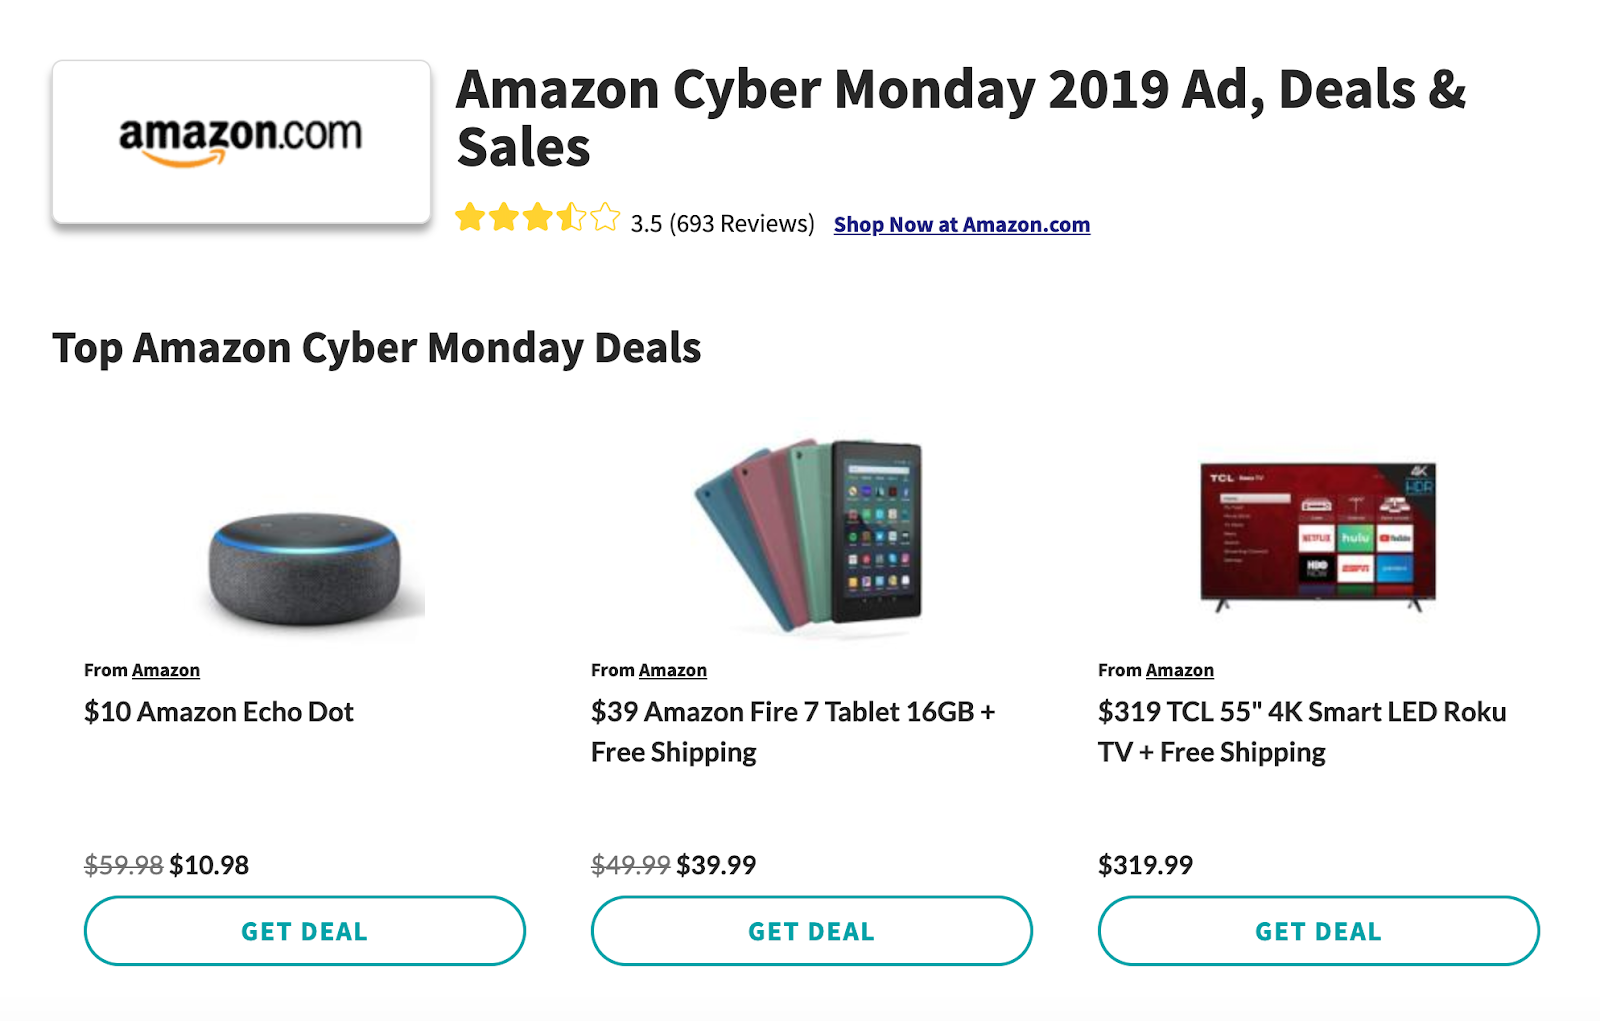 Amazon Cyber Monday deals 2019